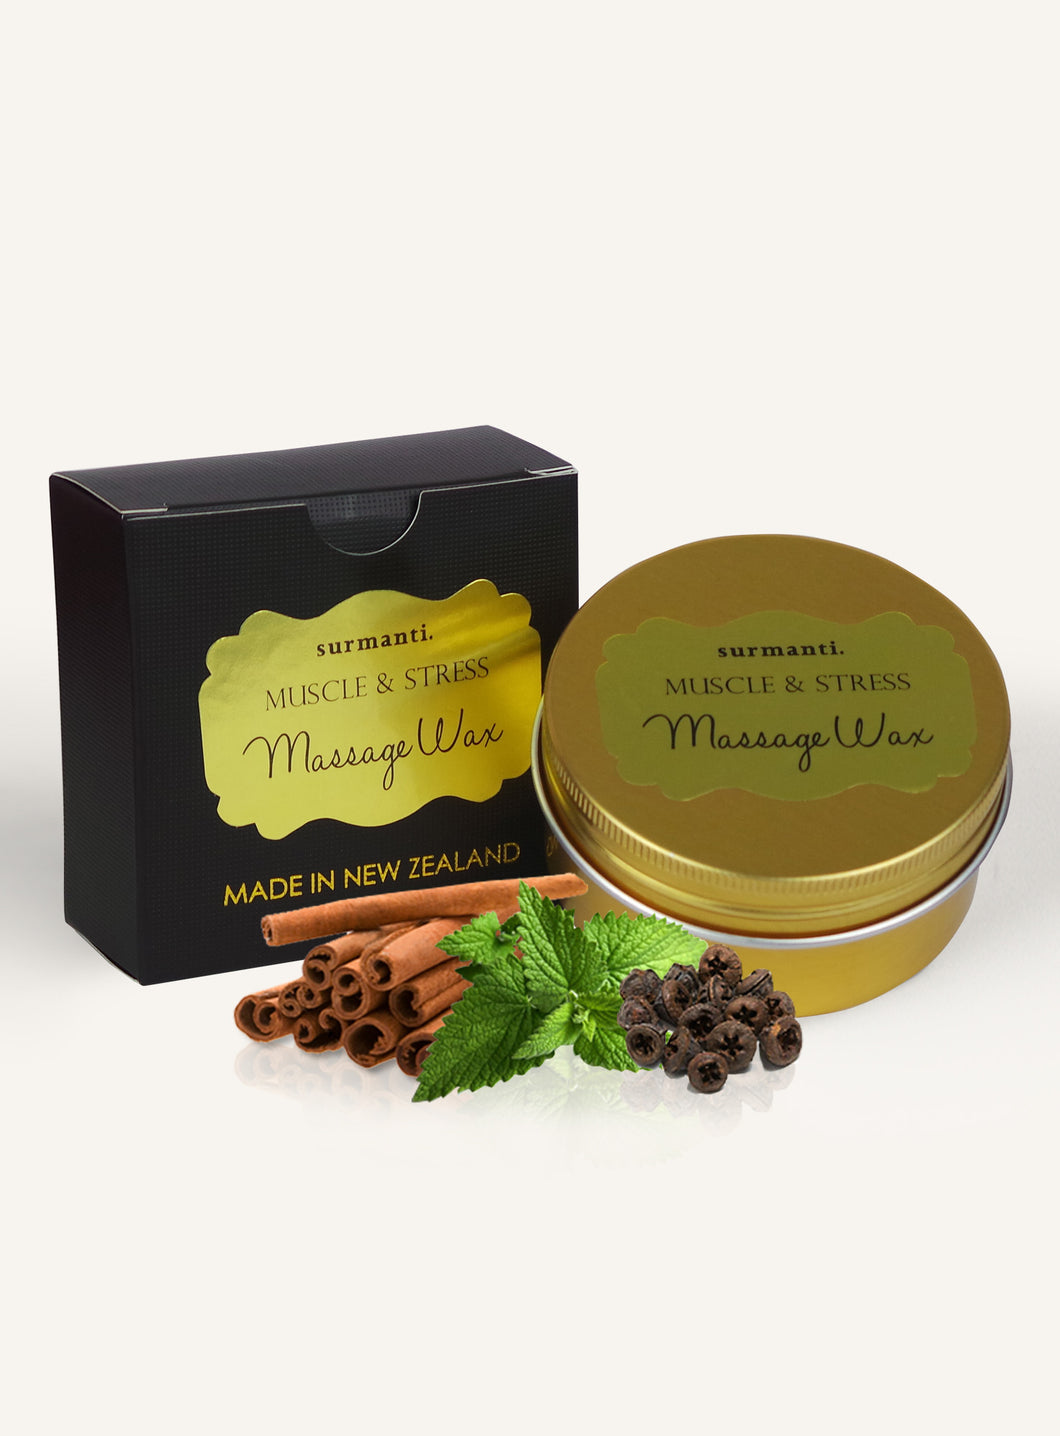 Surmanti Muscle and Stress Massage Massage Wax